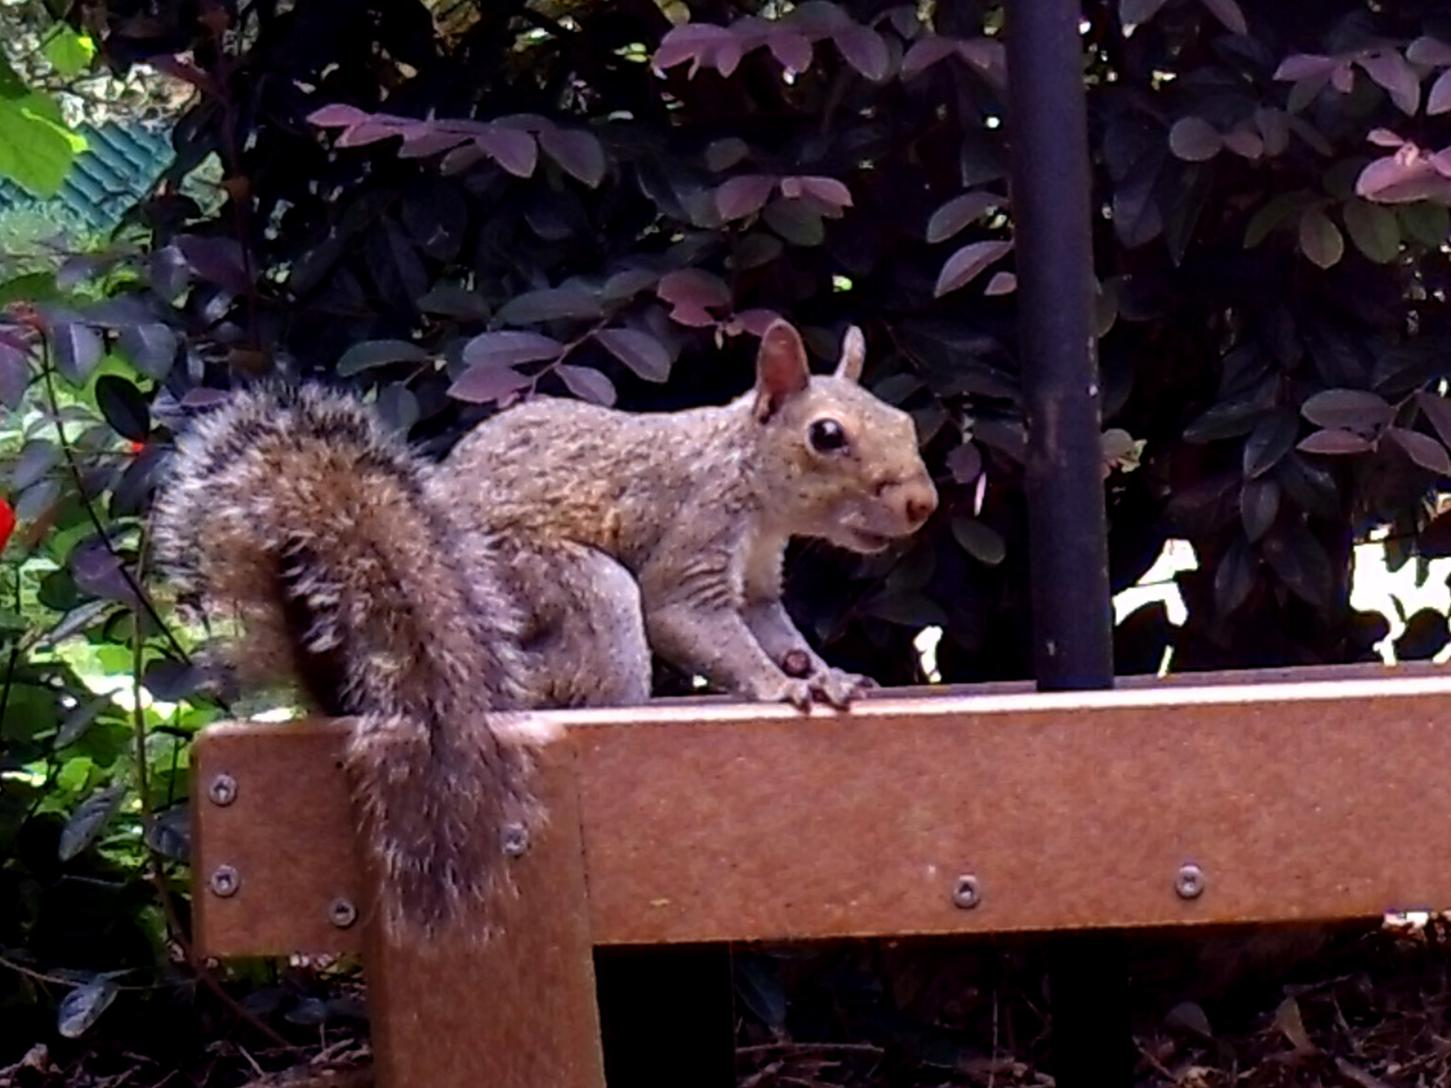 Alert gray squirrel pauses on a platform with shrubbery in the background.